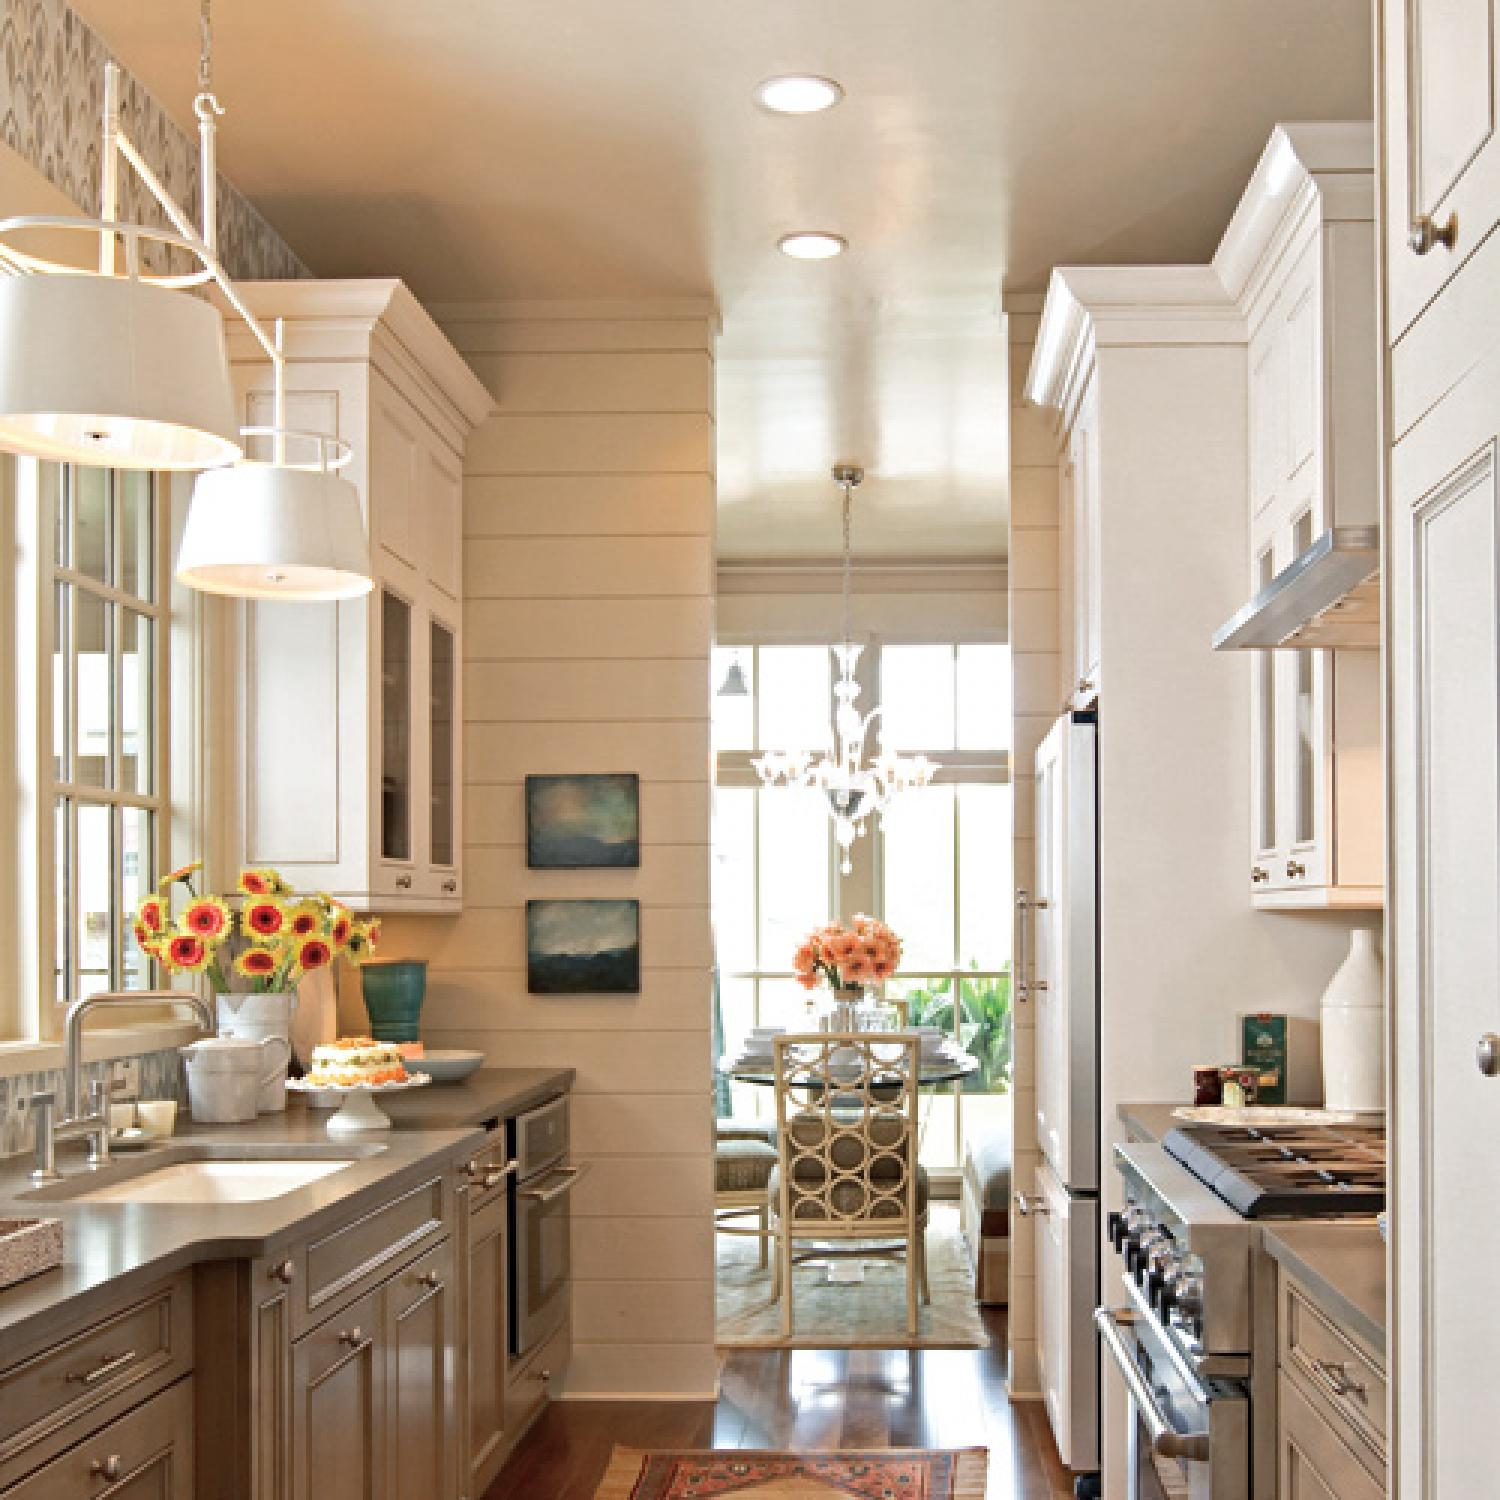 Galley Kitchen Remodel Ideas beautiful, efficient small kitchens | traditional home